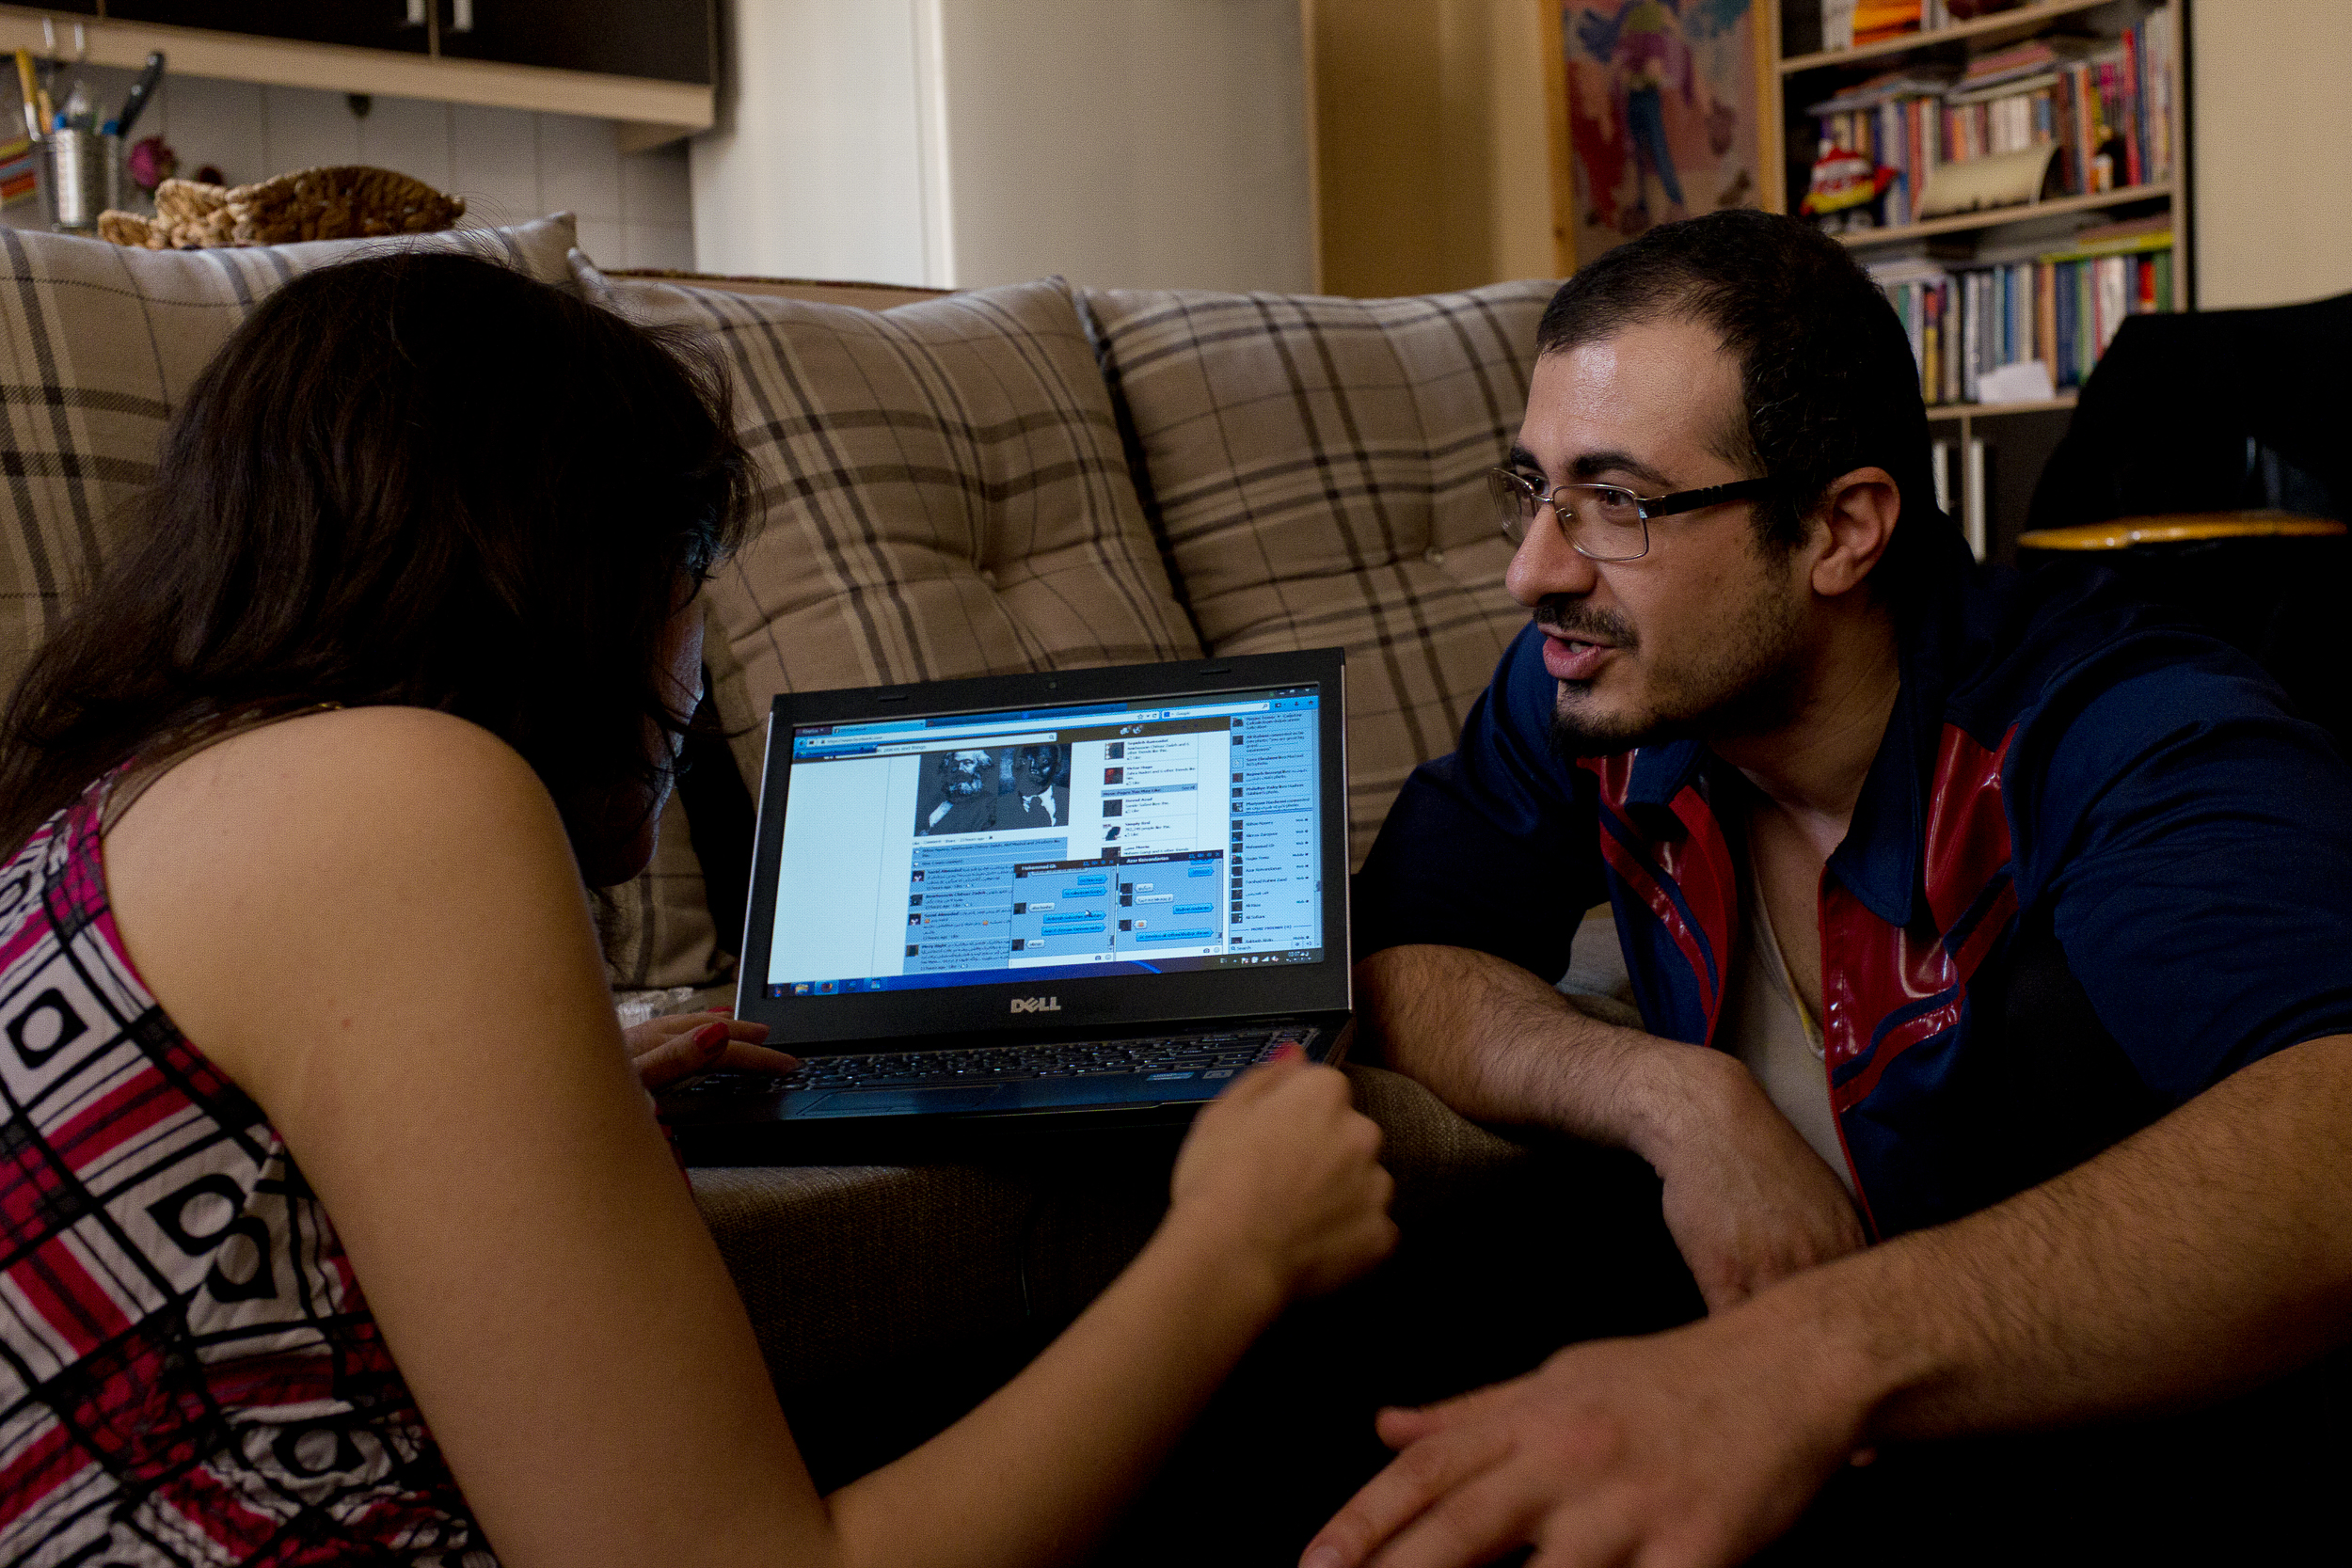 Sara and Salman use Facebook to invite friends to their upcoming party. Facebook is banned in Iran, but most young people freely access the site through the use of proxy defying software like Tor.